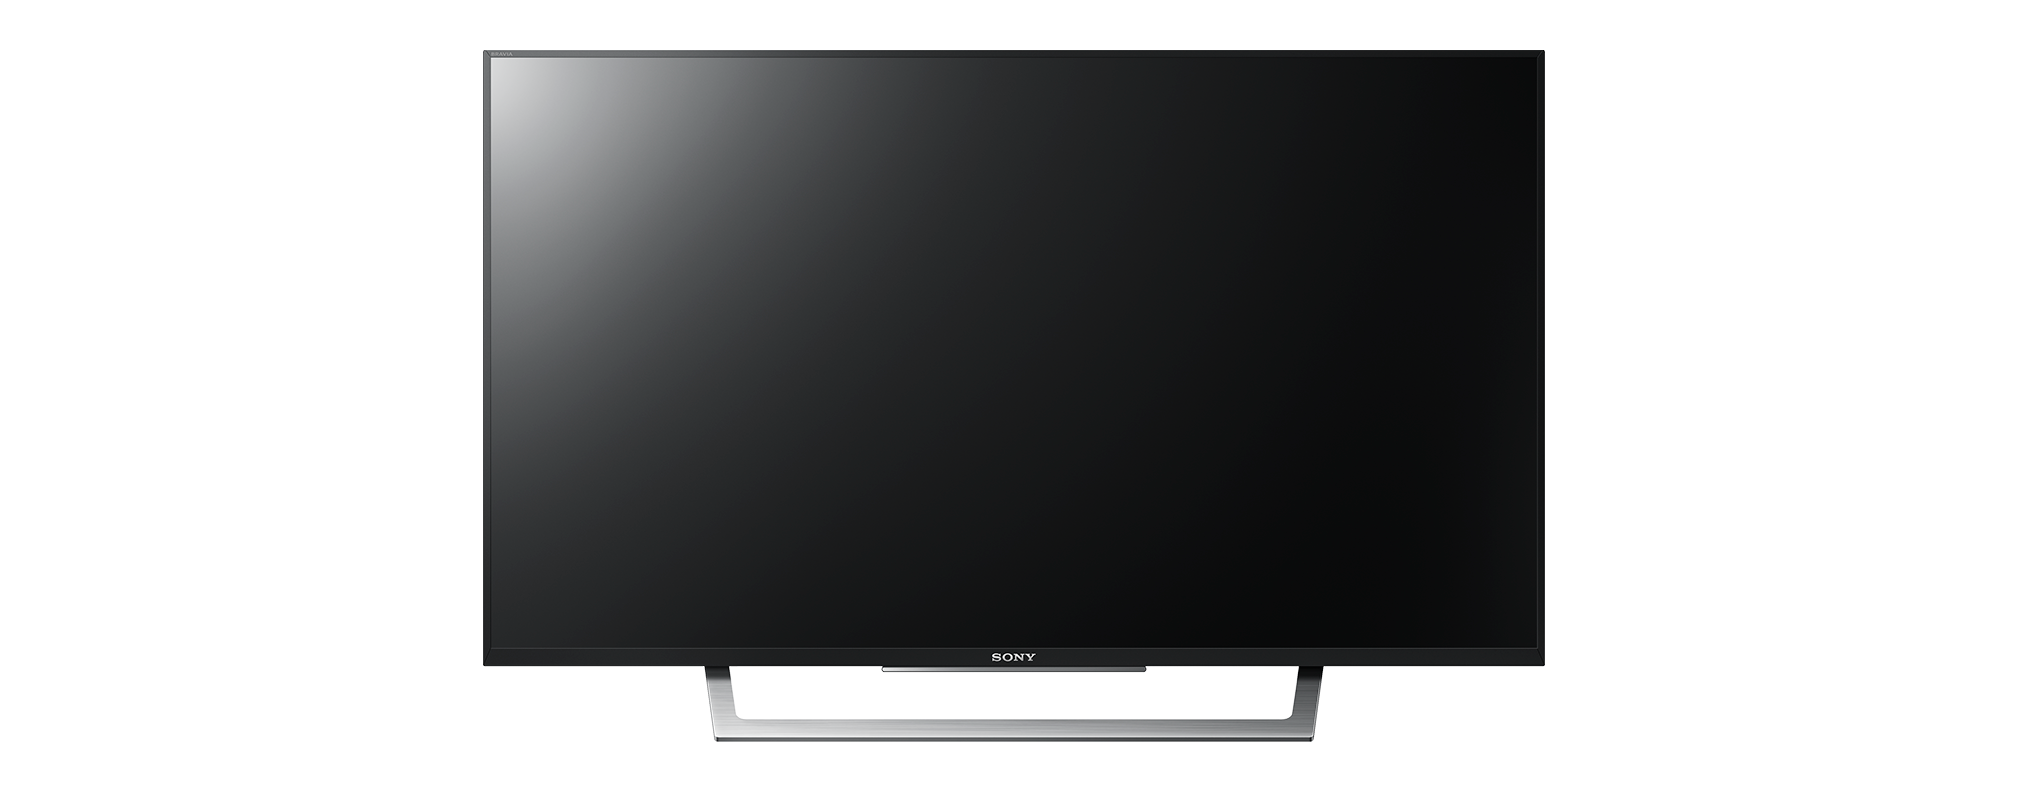 sony tv 39 inch. image gallery. \u2039 \u203a sony tv 39 inch